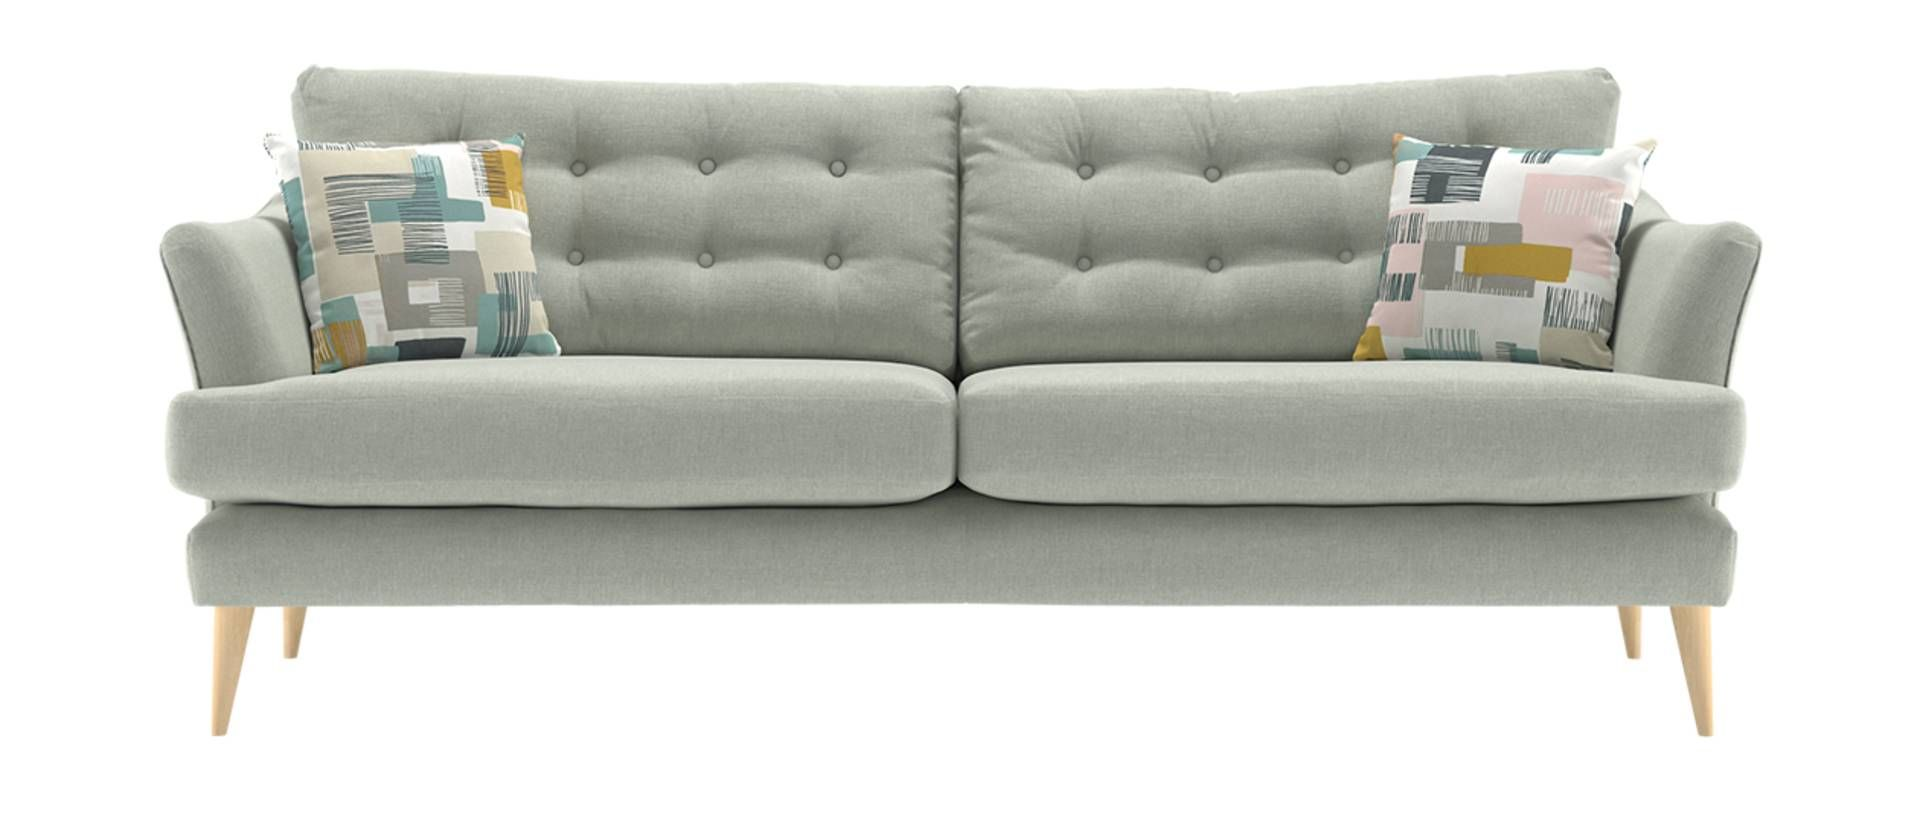 Big Sofa Osca Pin By Samantha Duffy On New Home Pinterest Sofa Living Room